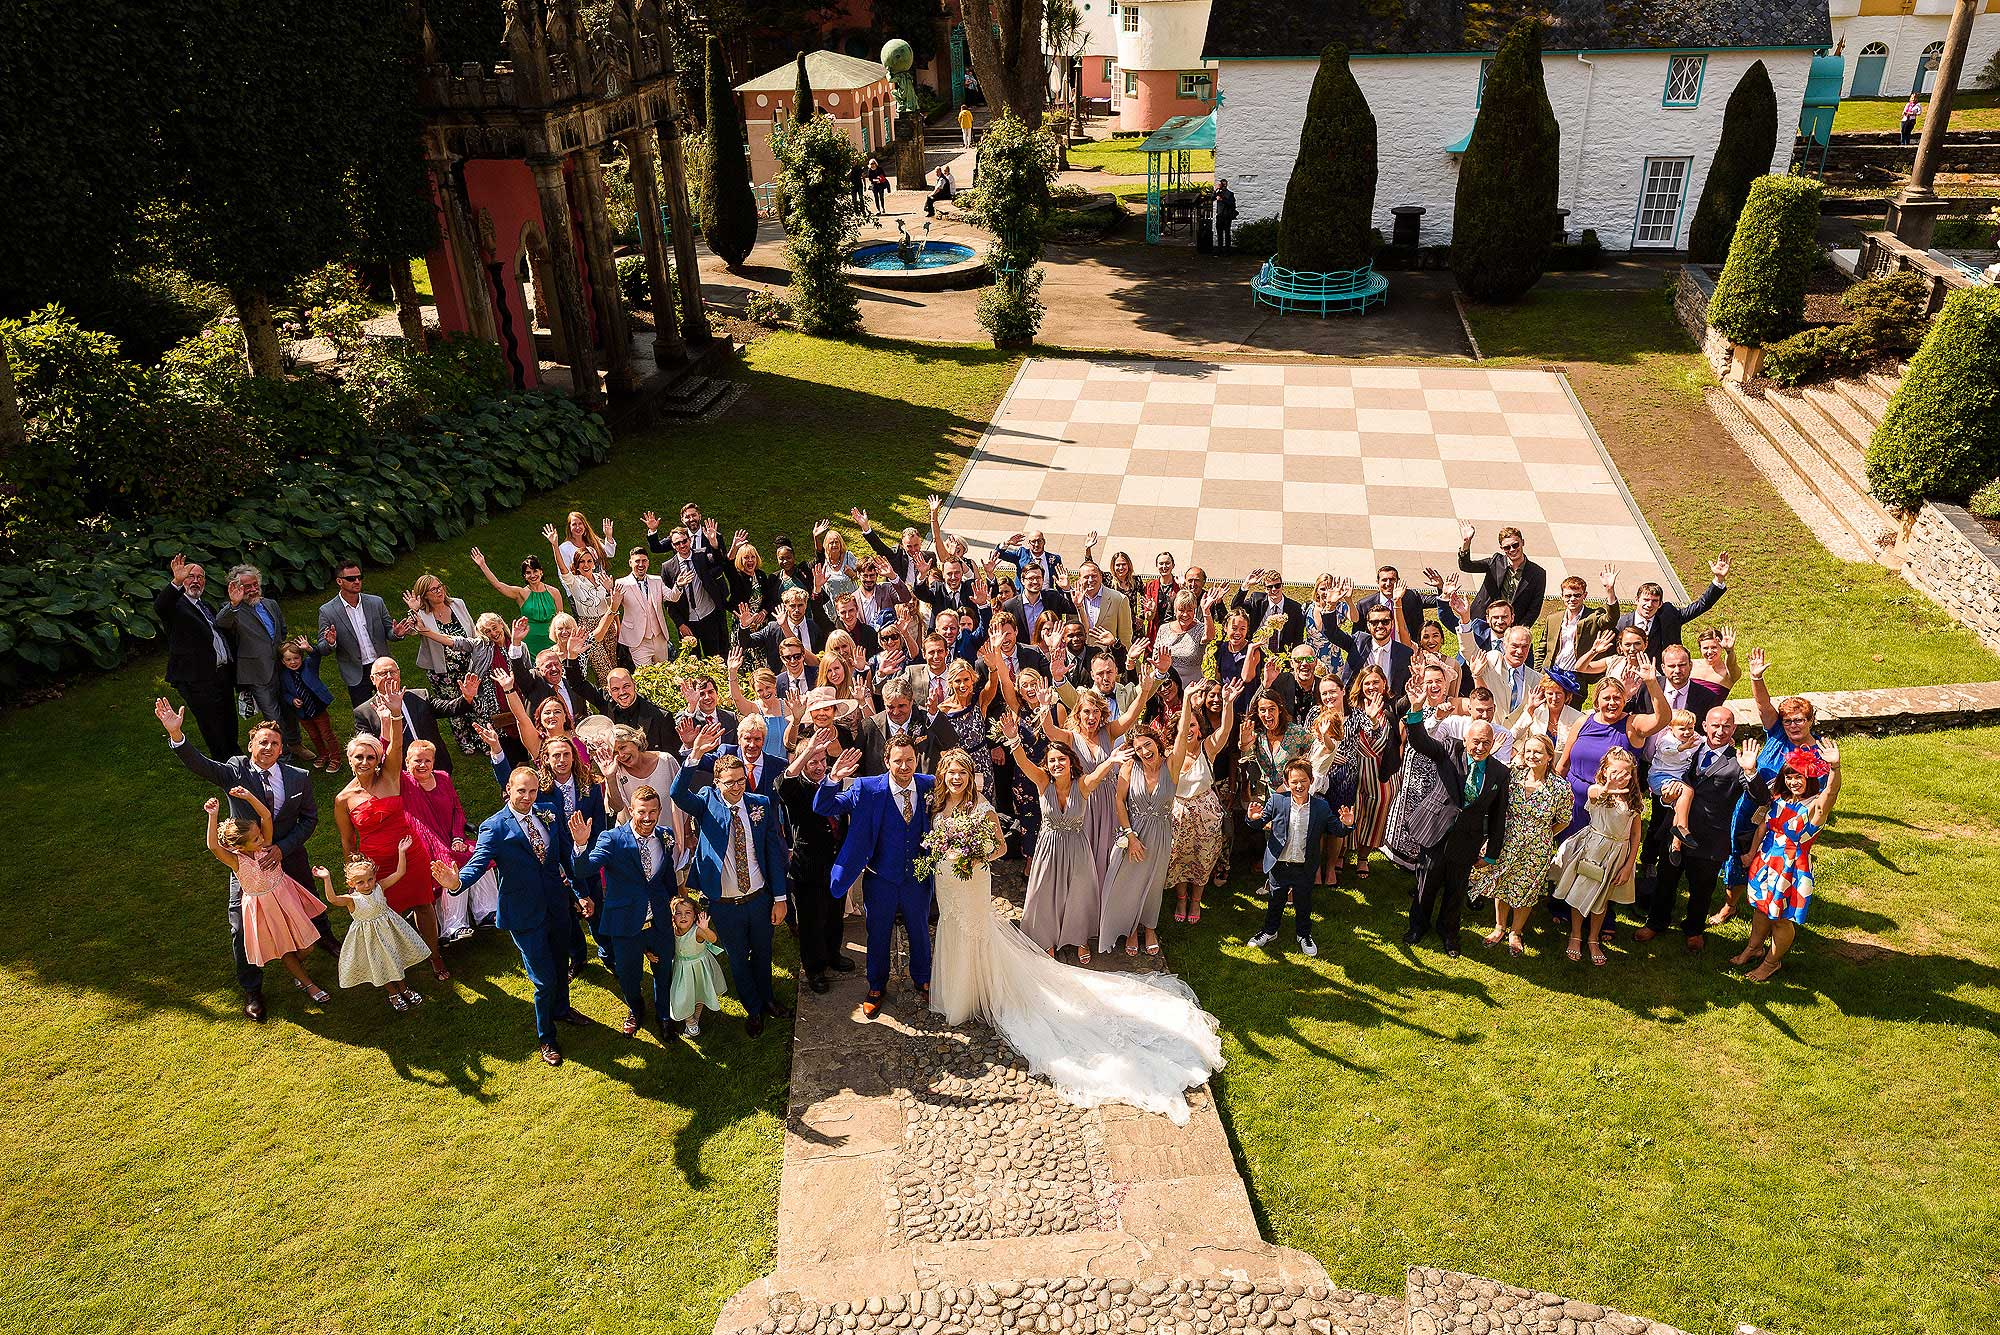 group photograph of all wedding guests in Portmeirion Village